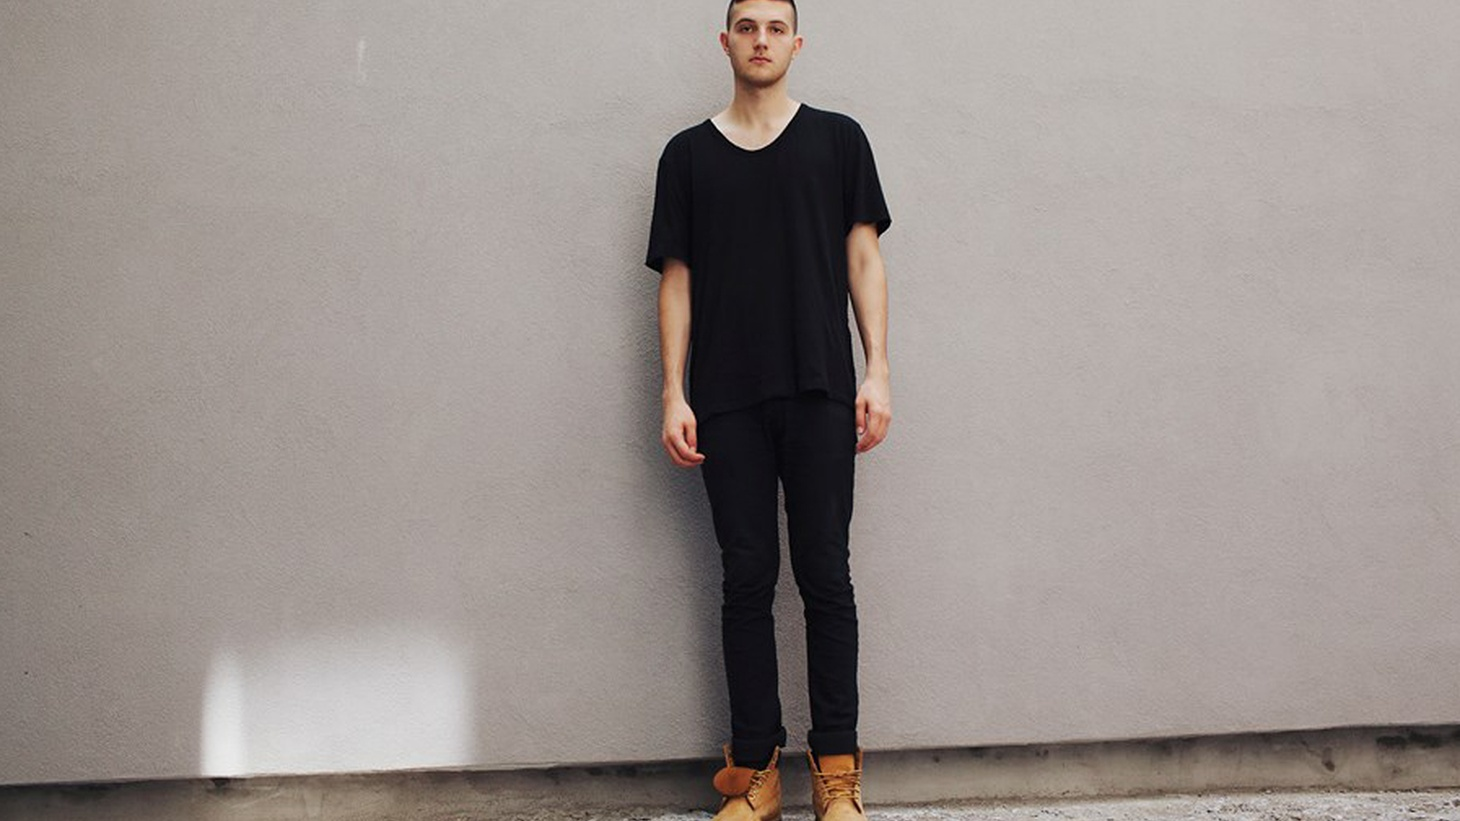 Jim-E Stack produces moody electronic vignettes perfectly suited for some serious head-bobbing in the best sorts of clubs.